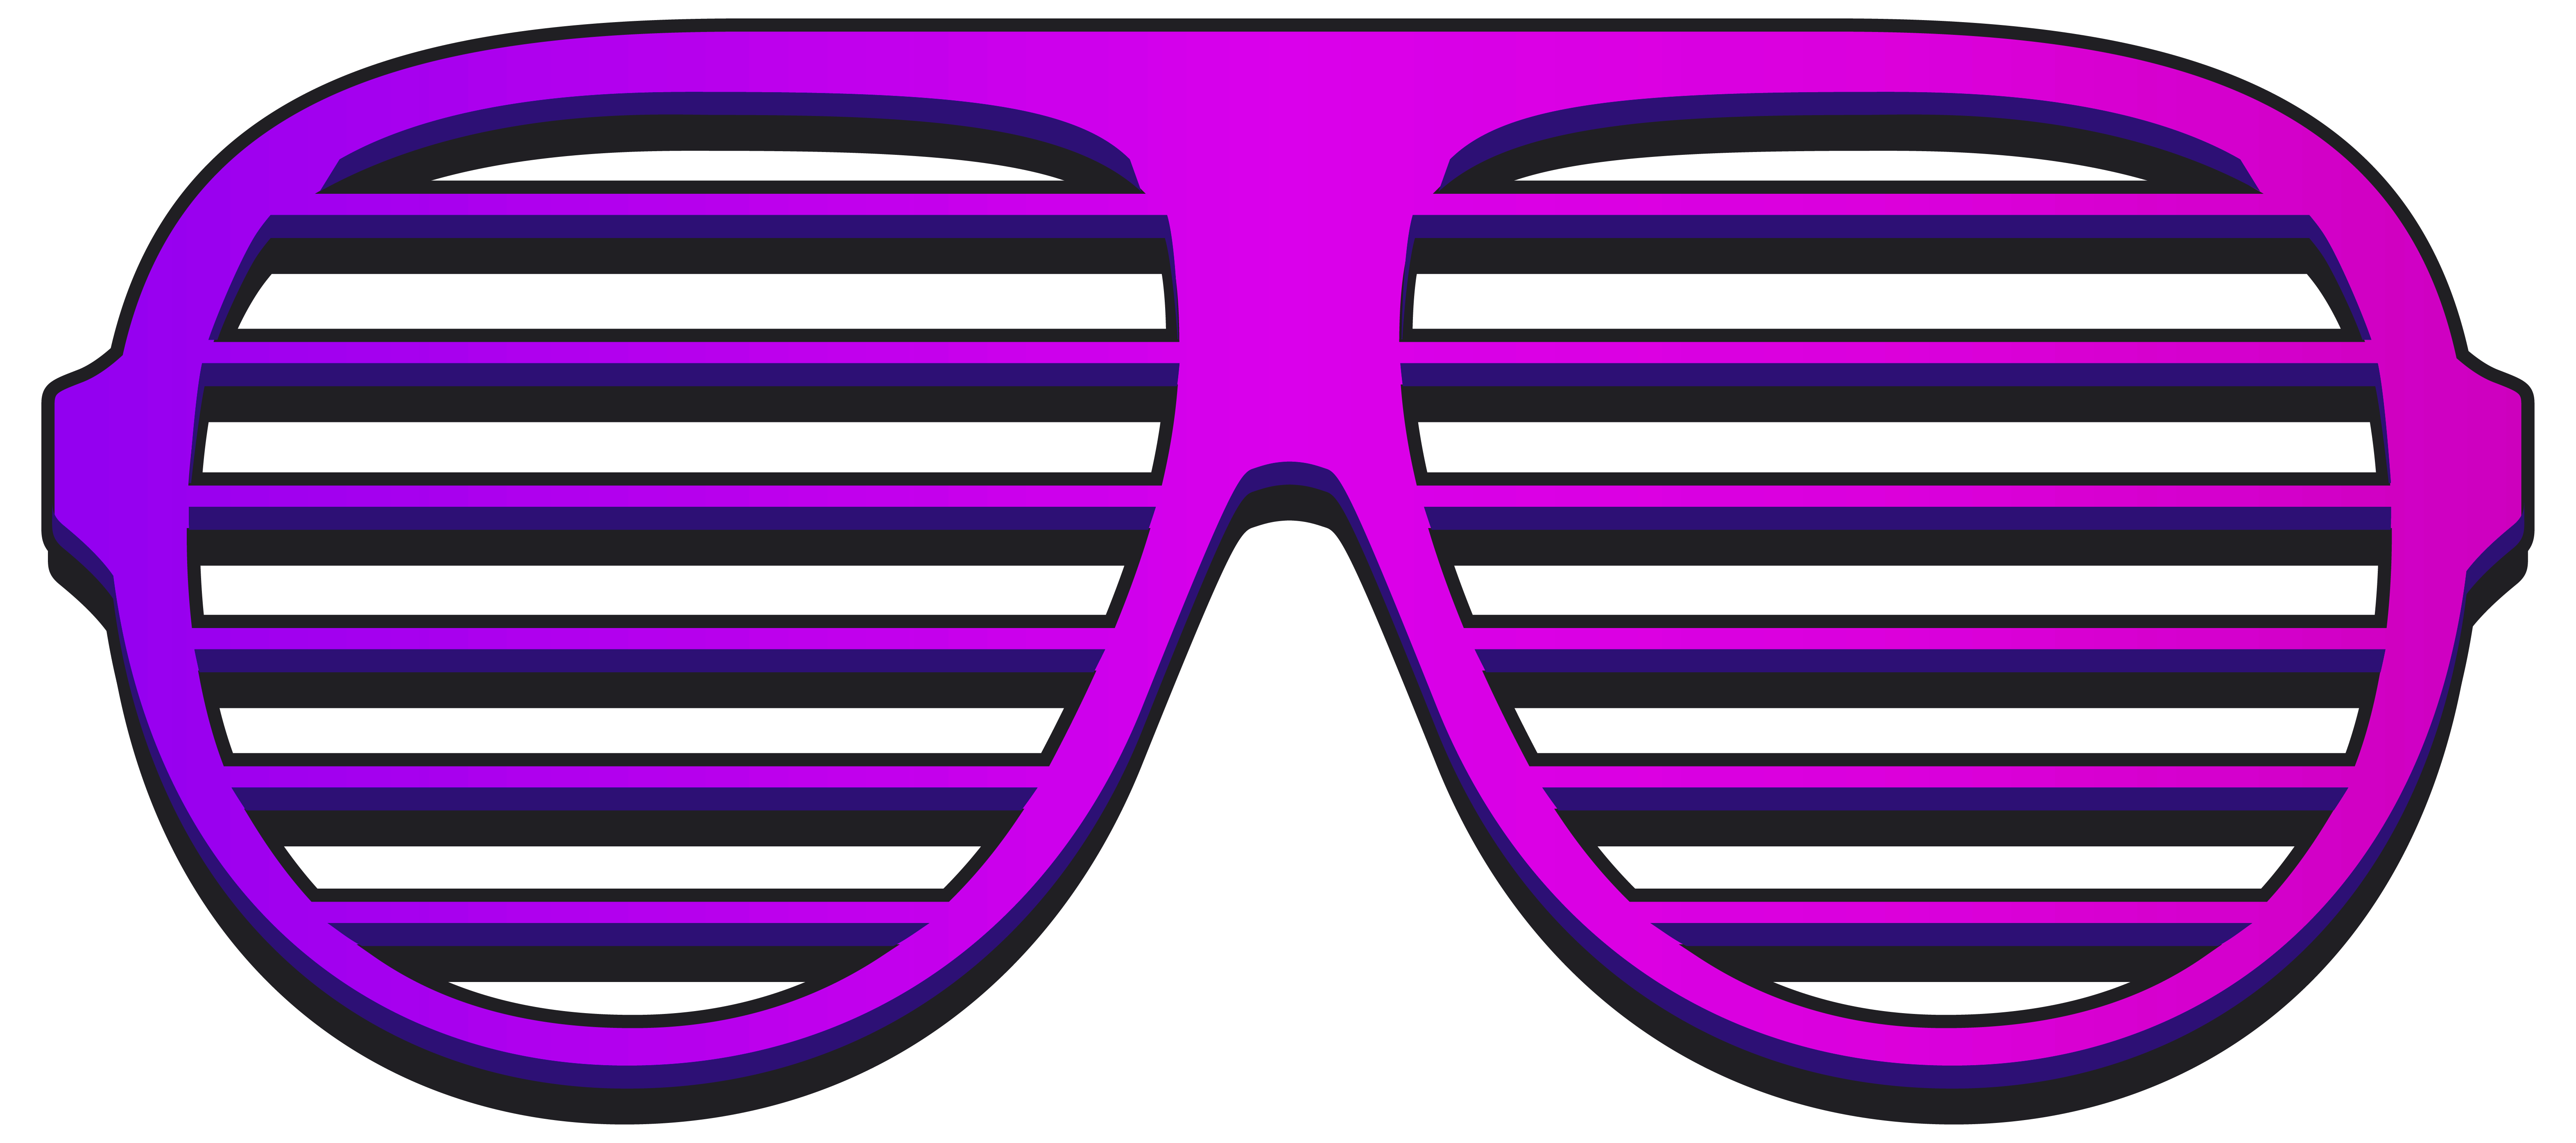 Sunglasses clipart purple. Cool shutter shades png